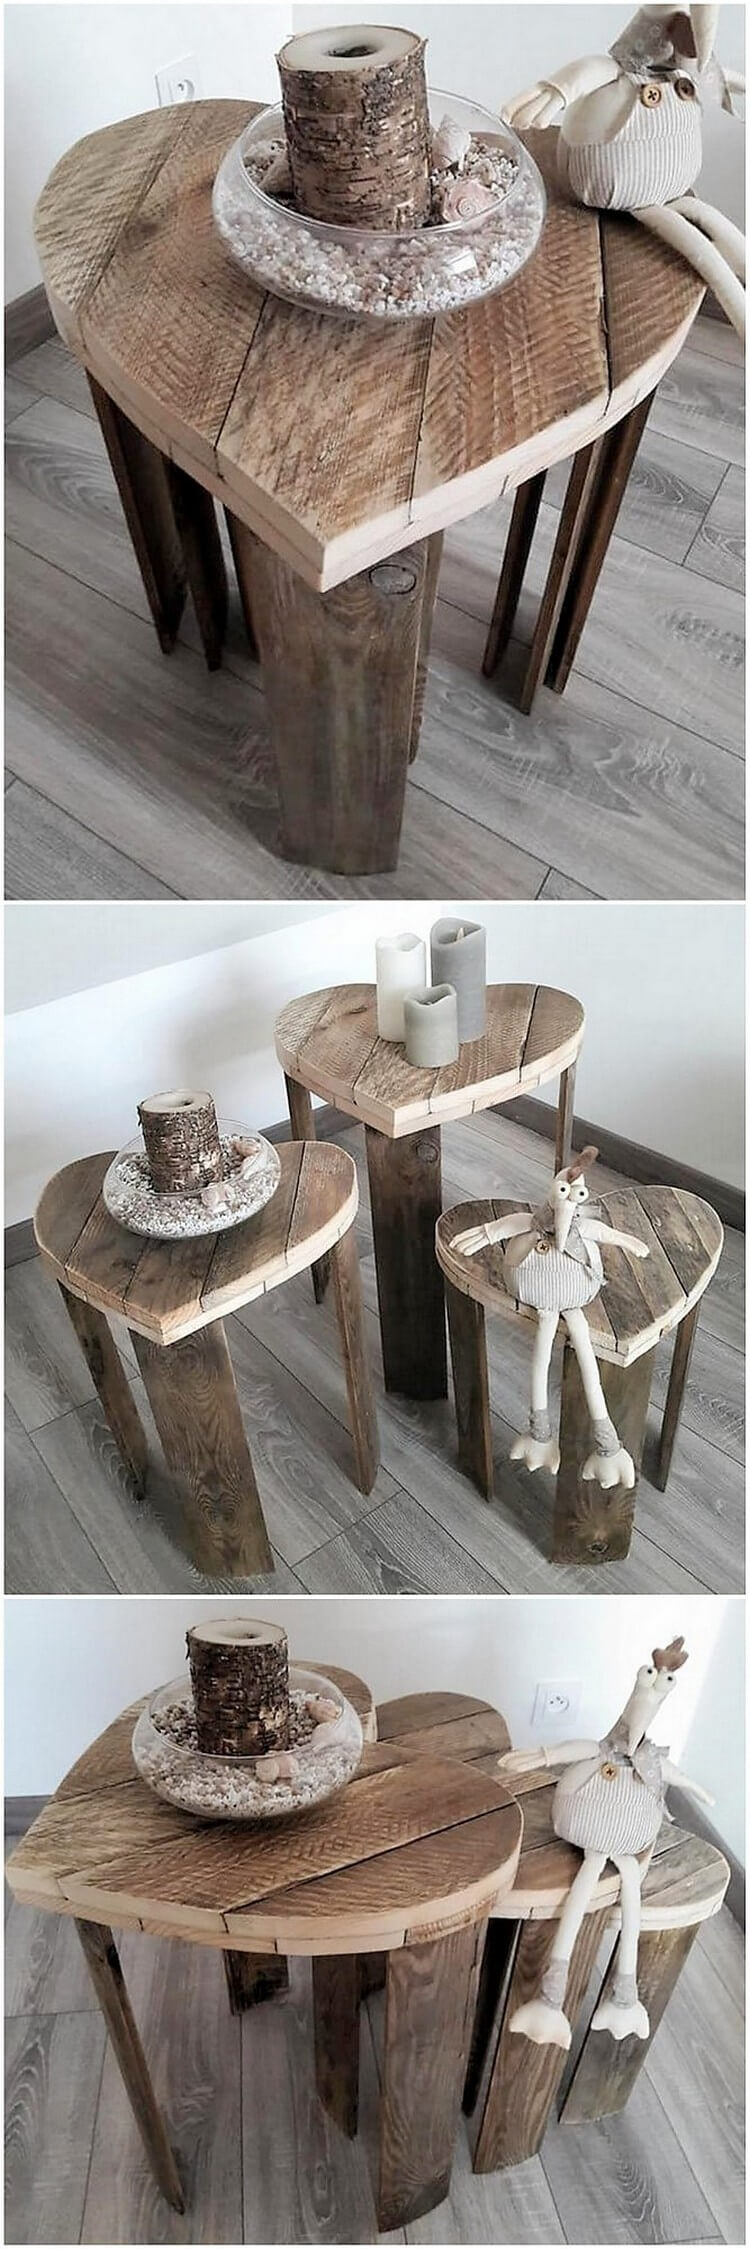 Pallet Stools and Table